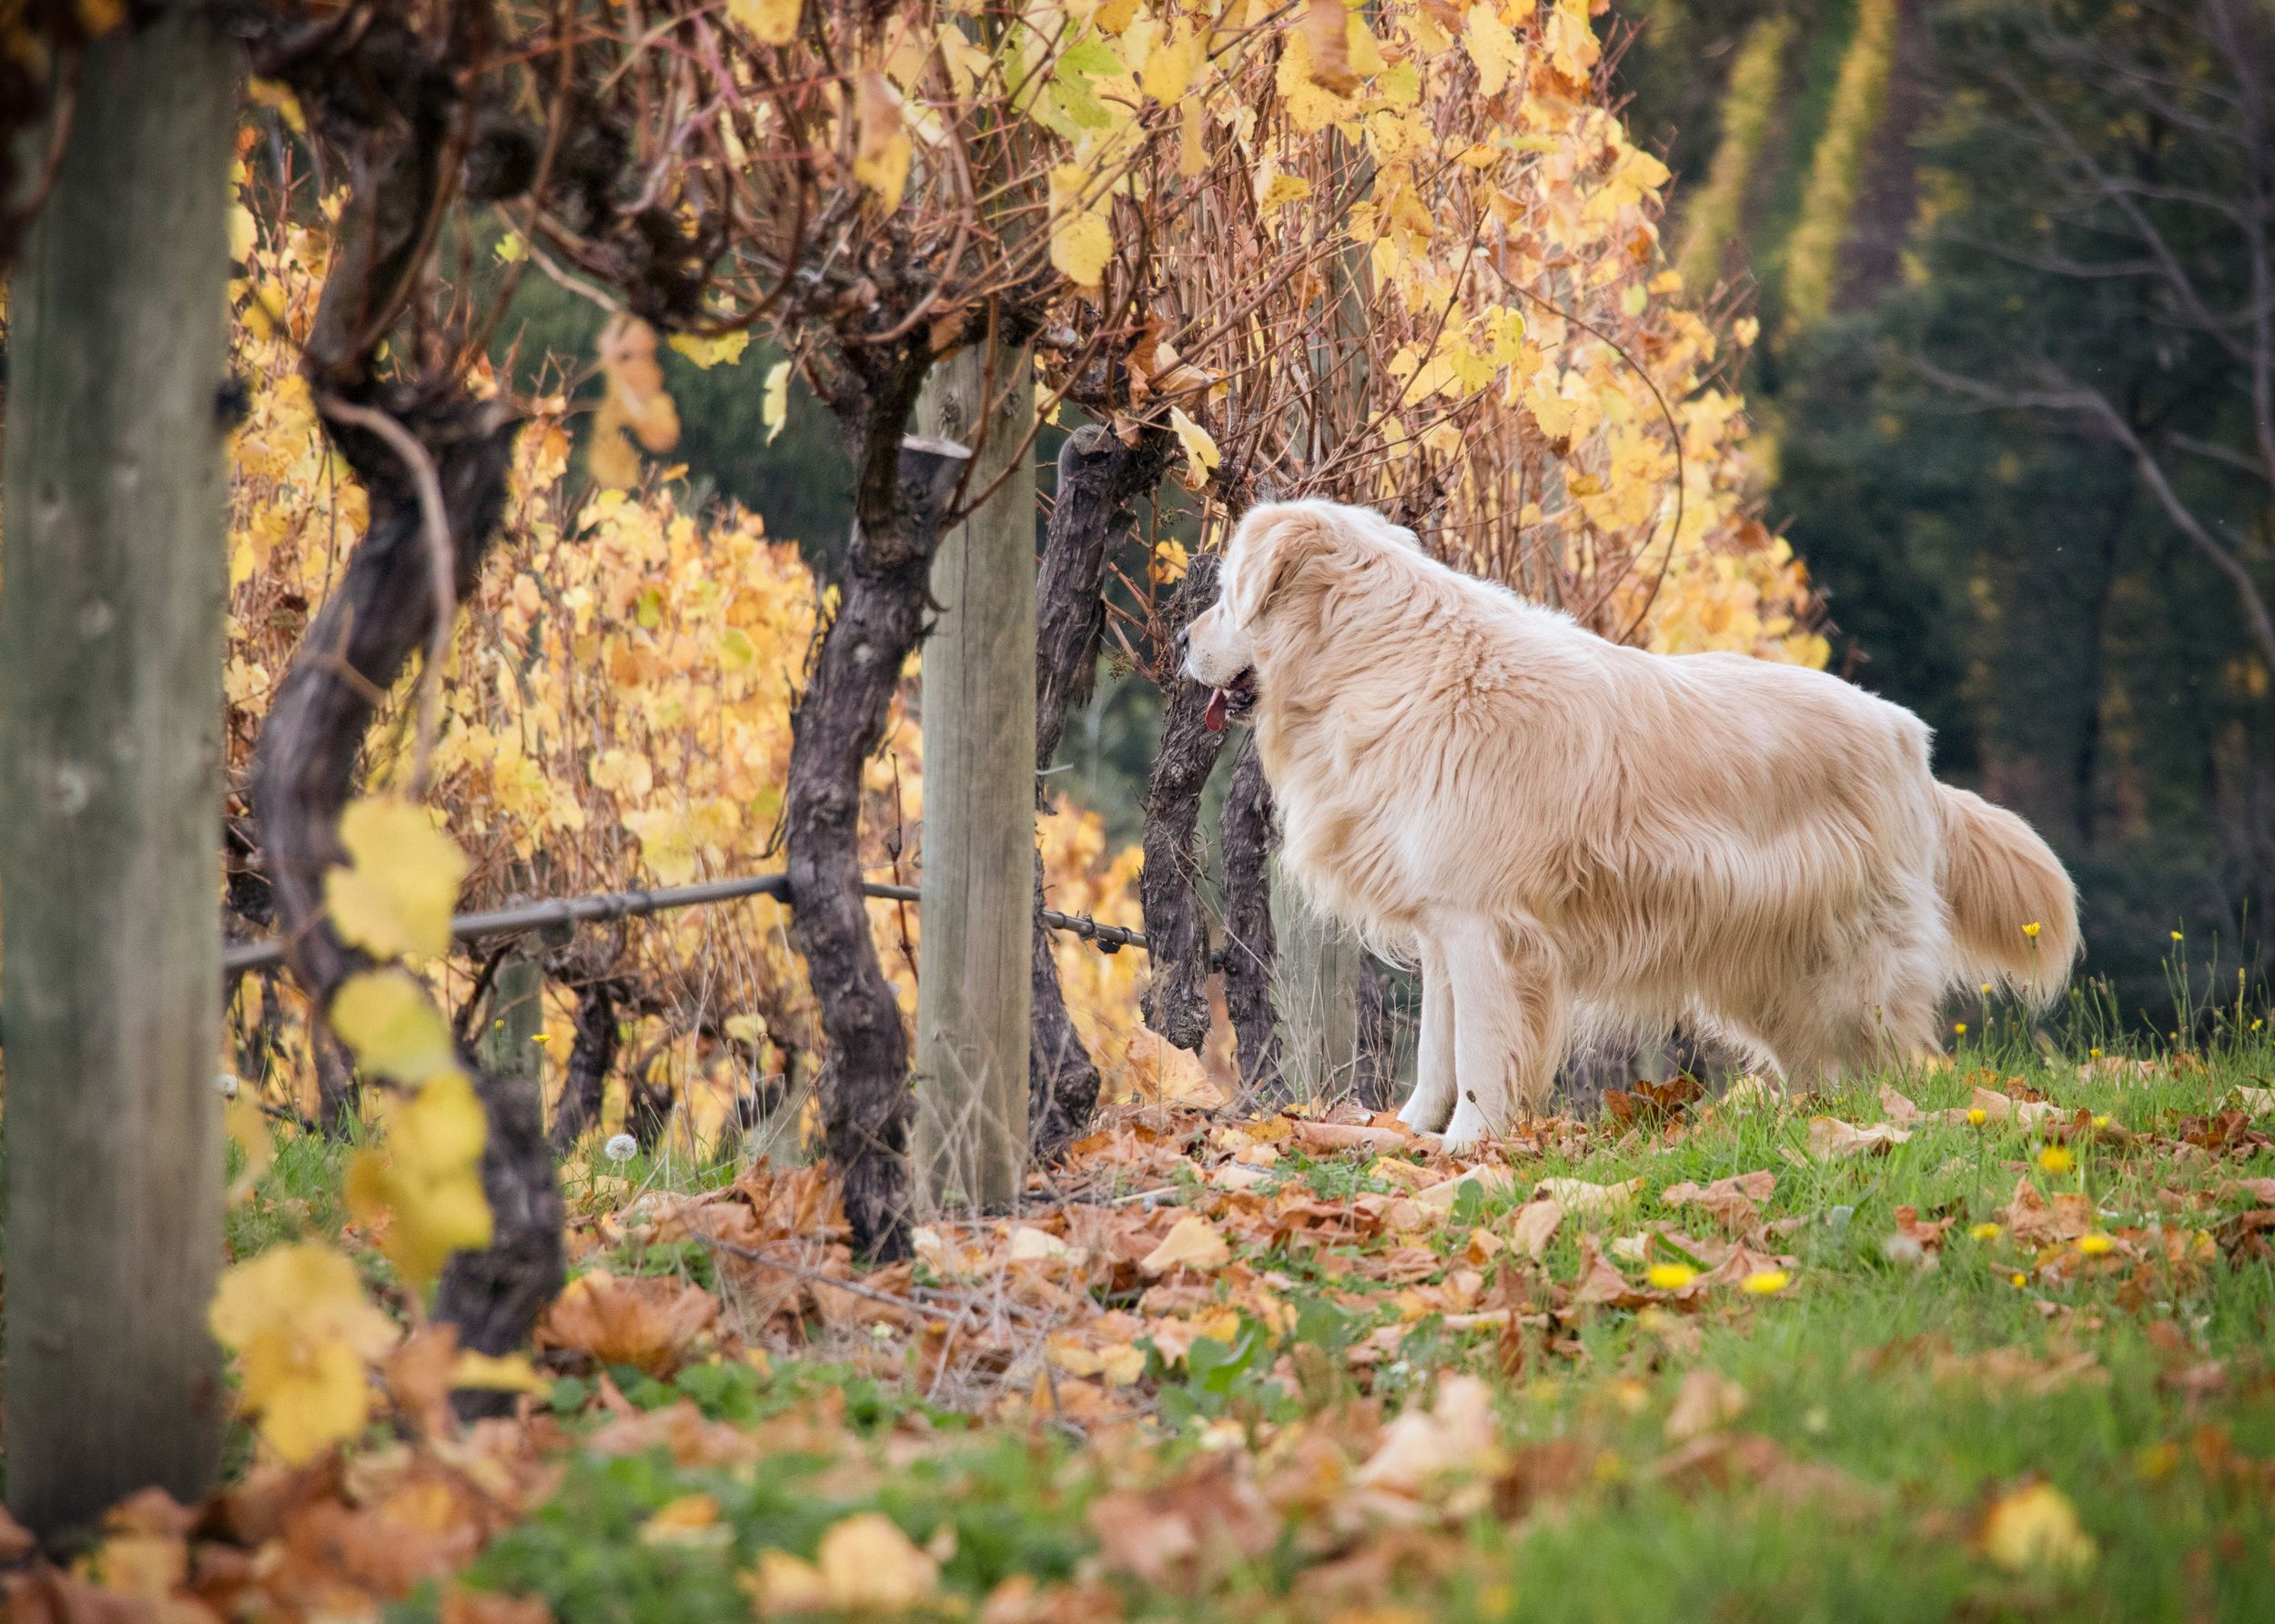 Spud Evm Pet Photography Yarra Valley Melbourne Winery